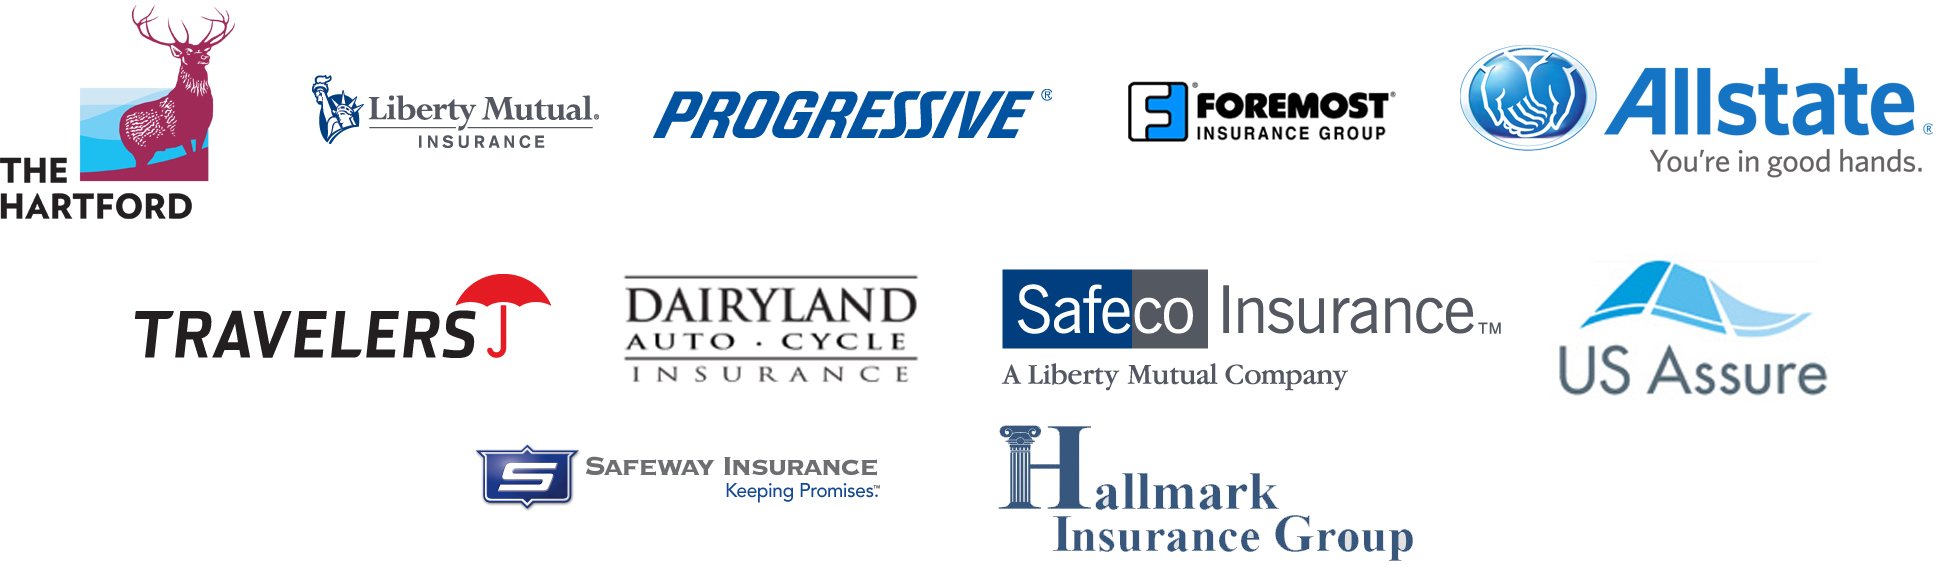 Logos for Allstate Independent Agent, Liberty Mutual, US Assure, The Hartford, Progressive, Foremost Insurance Group, Travelers, Dairyland, Safeco Insurance